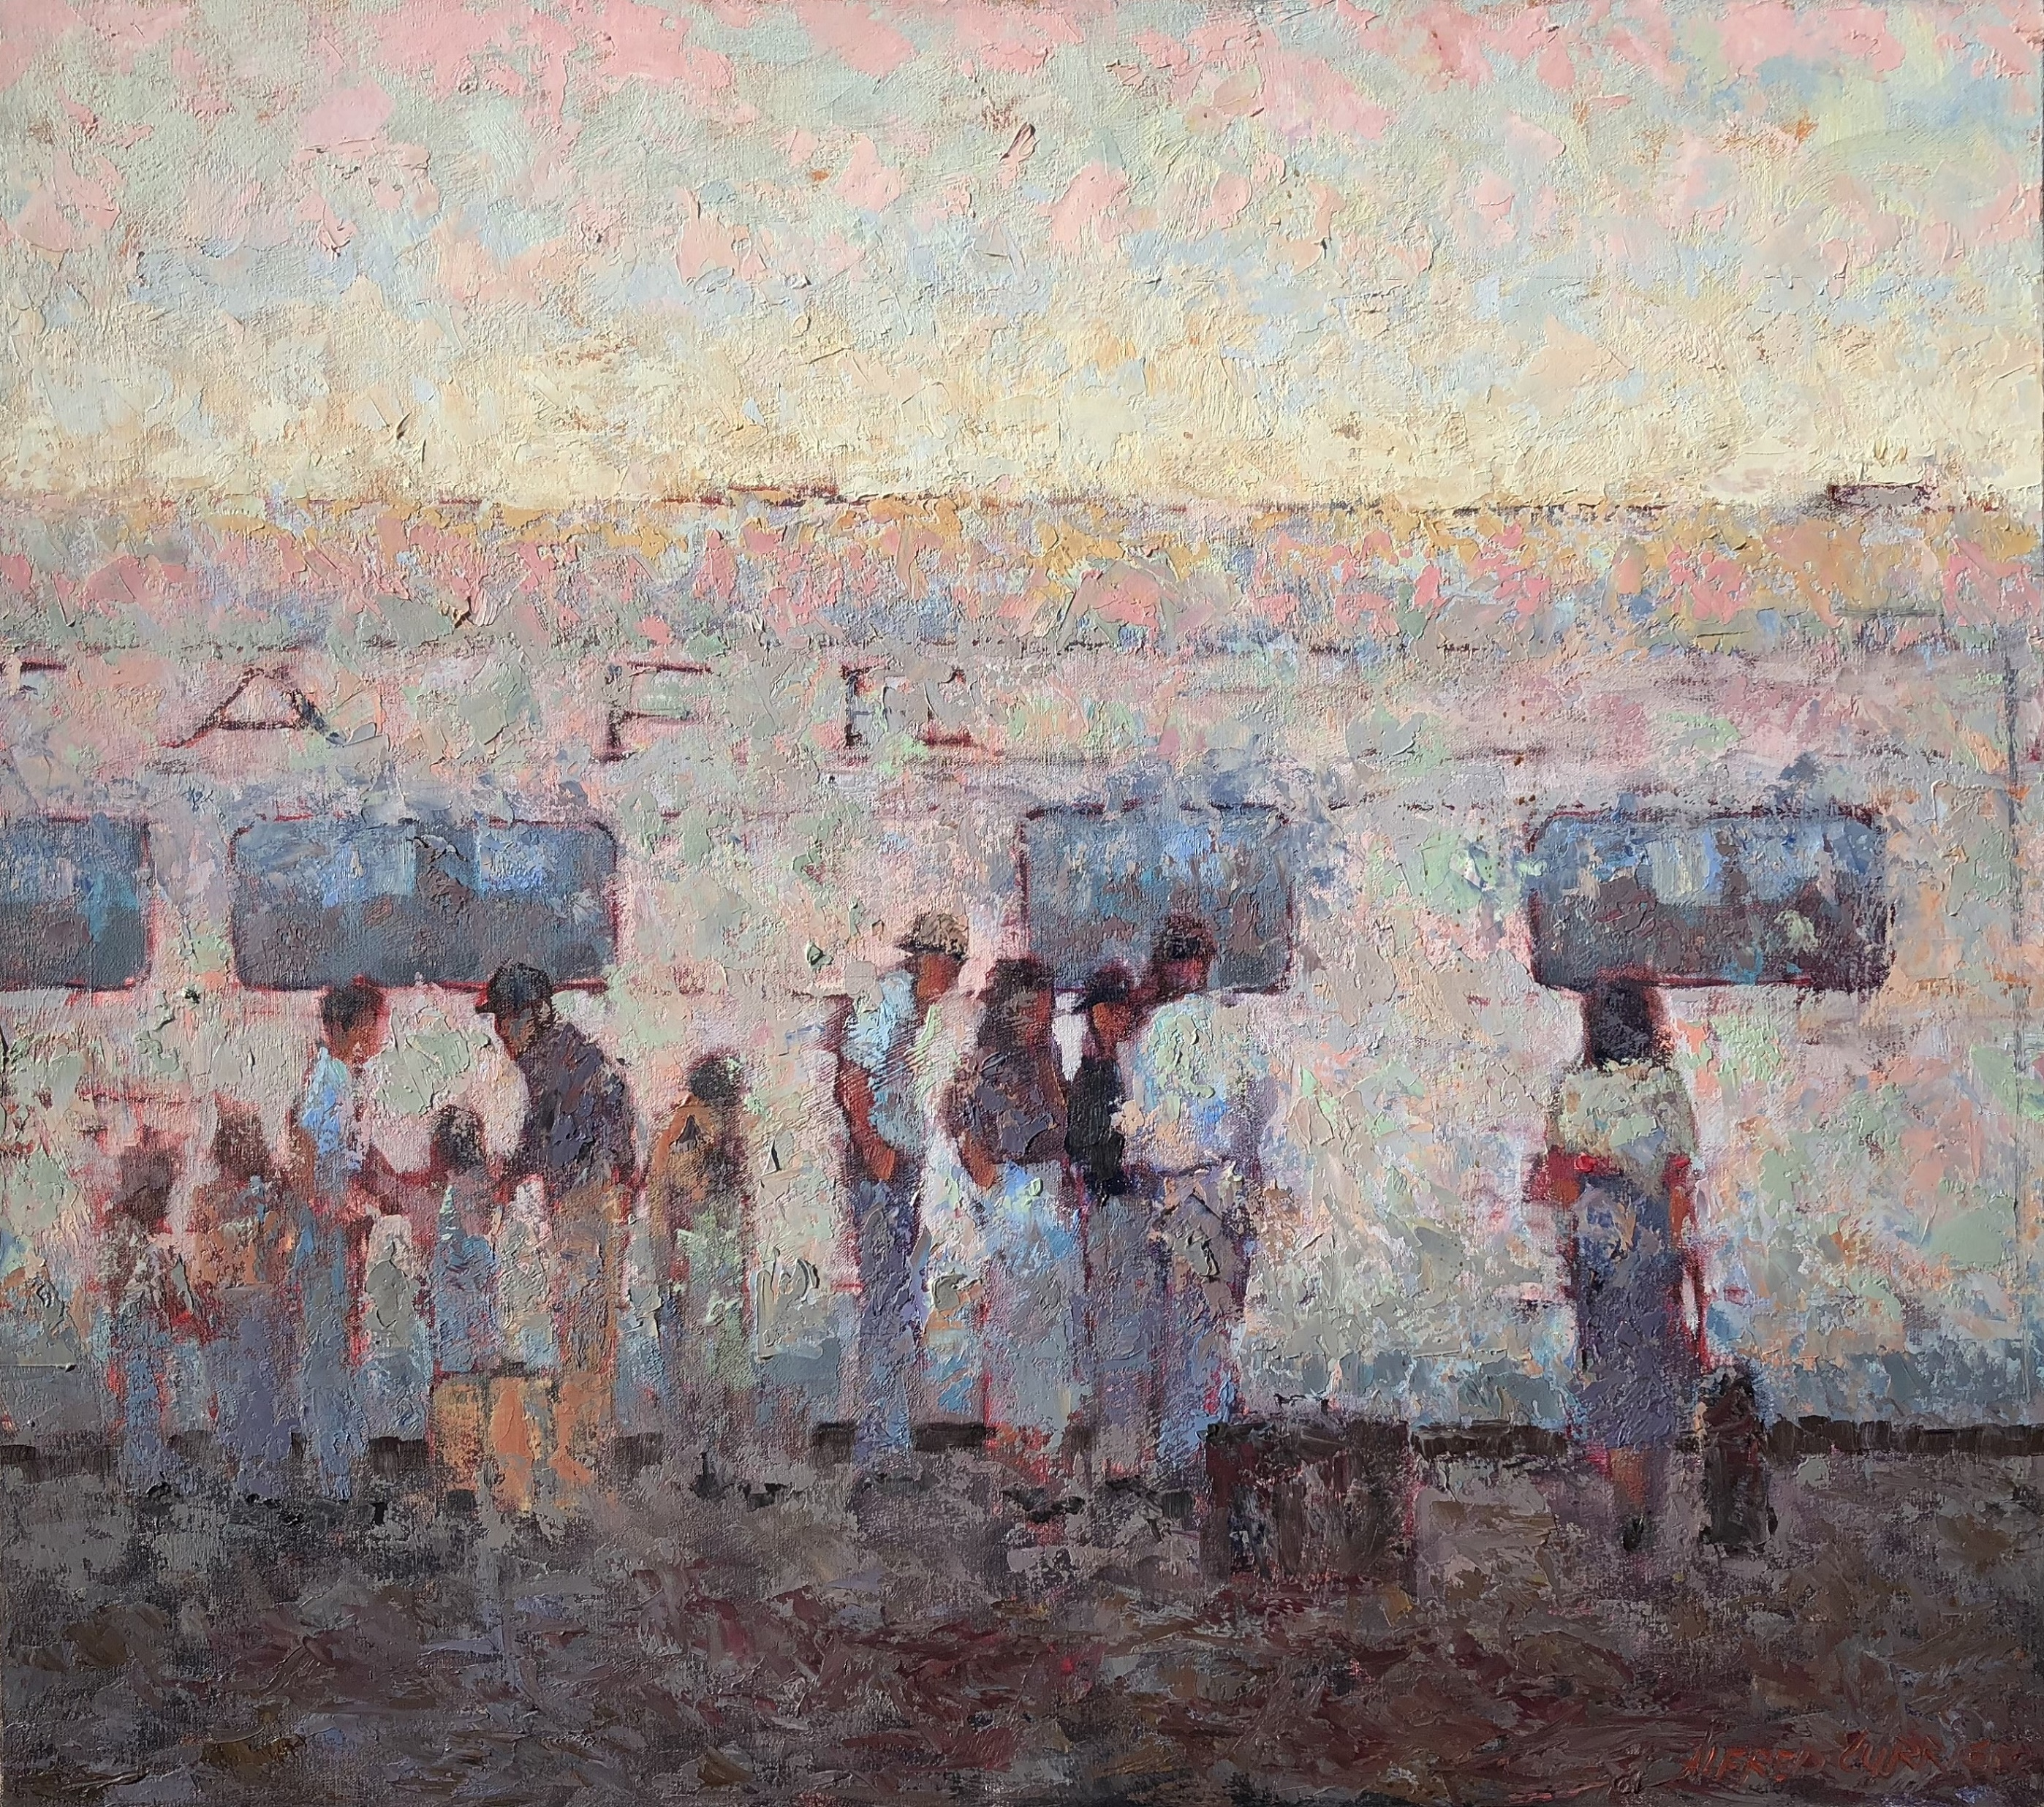 New Beginnings artwork by Alfred Currier - art listed for sale on Artplode